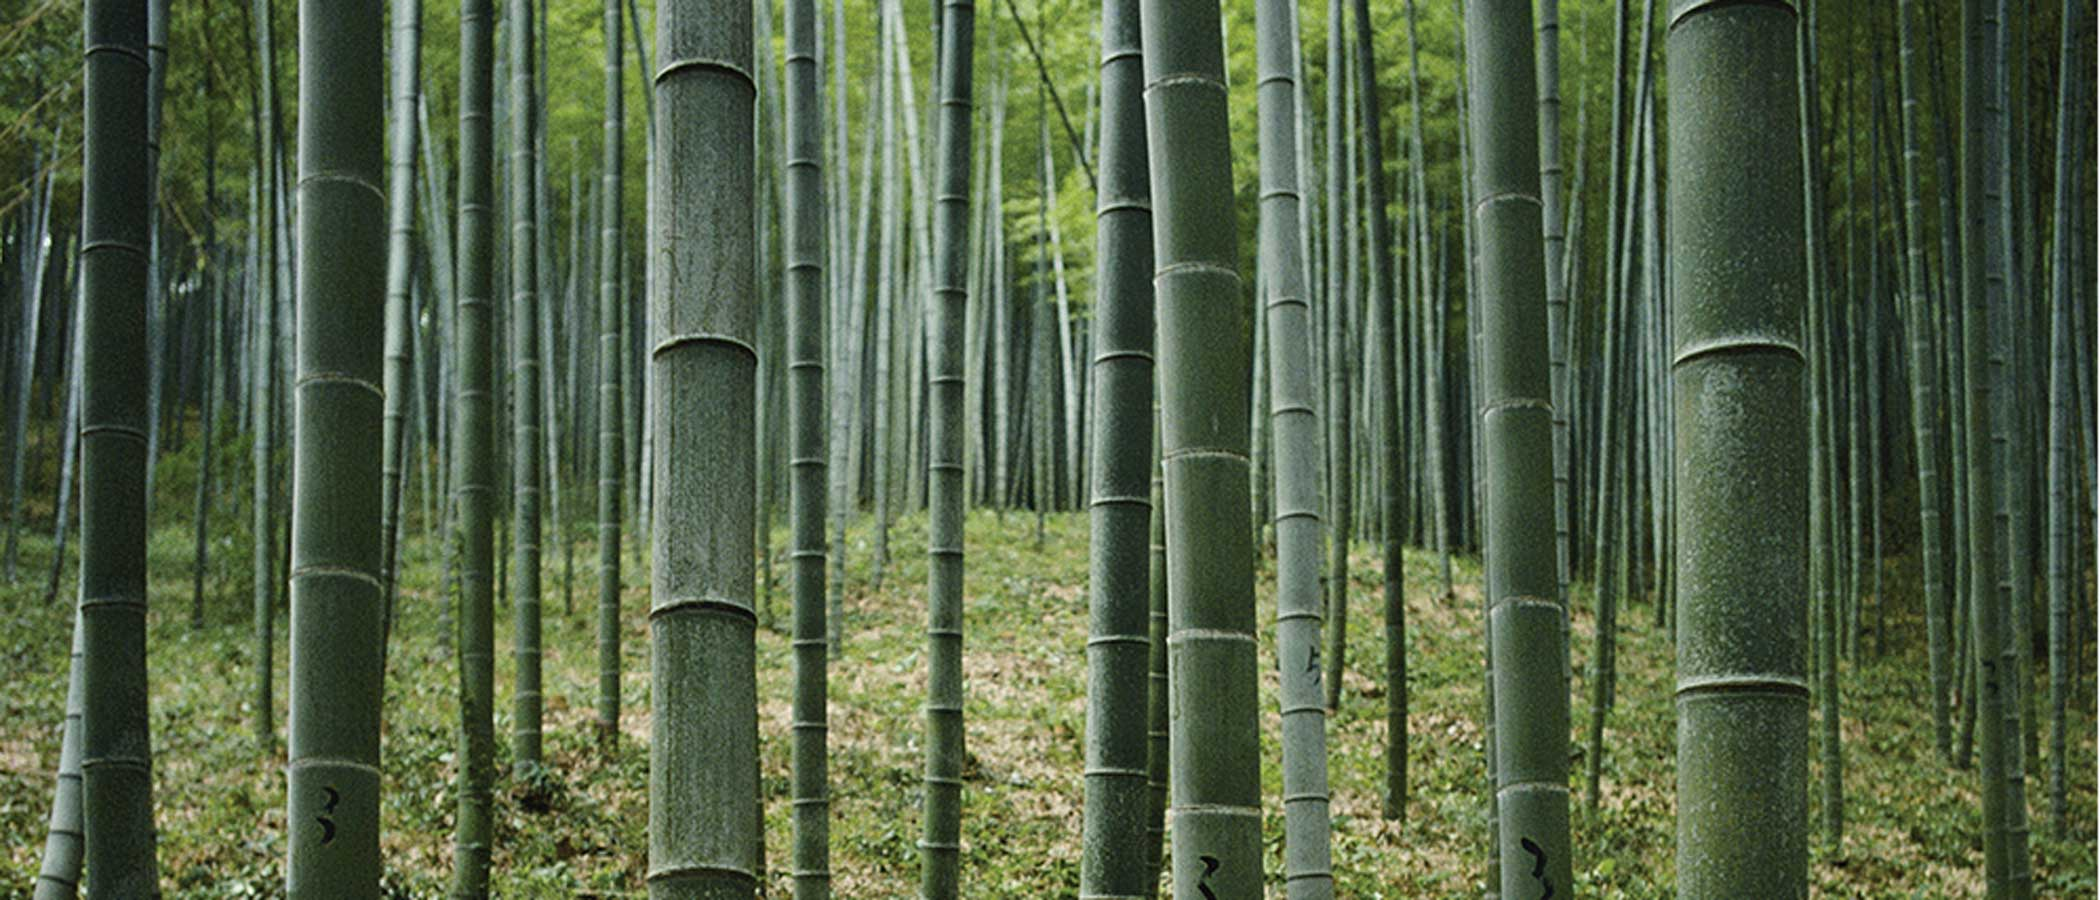 A bamboo forest.